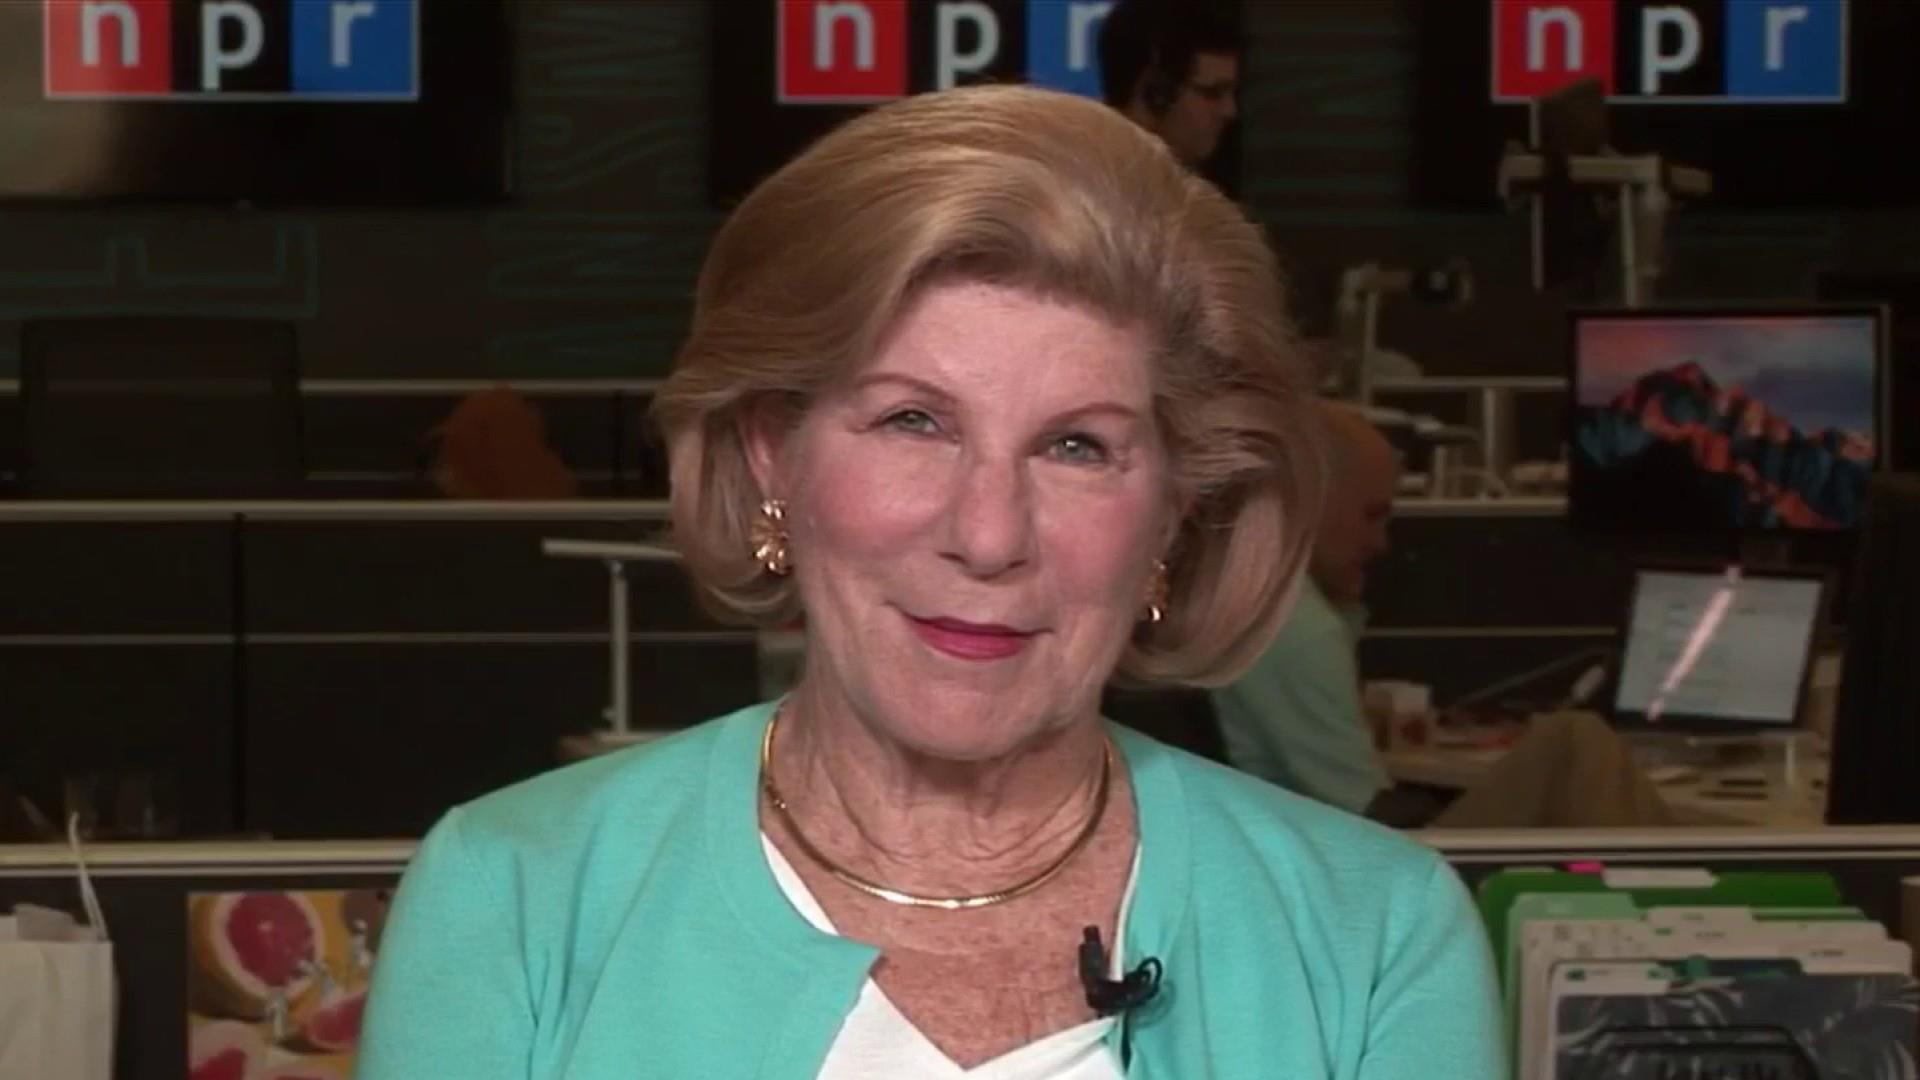 Nina Totenberg on President re-opening FBI investigation: 'Happens hundreds of times in the course of any administration'